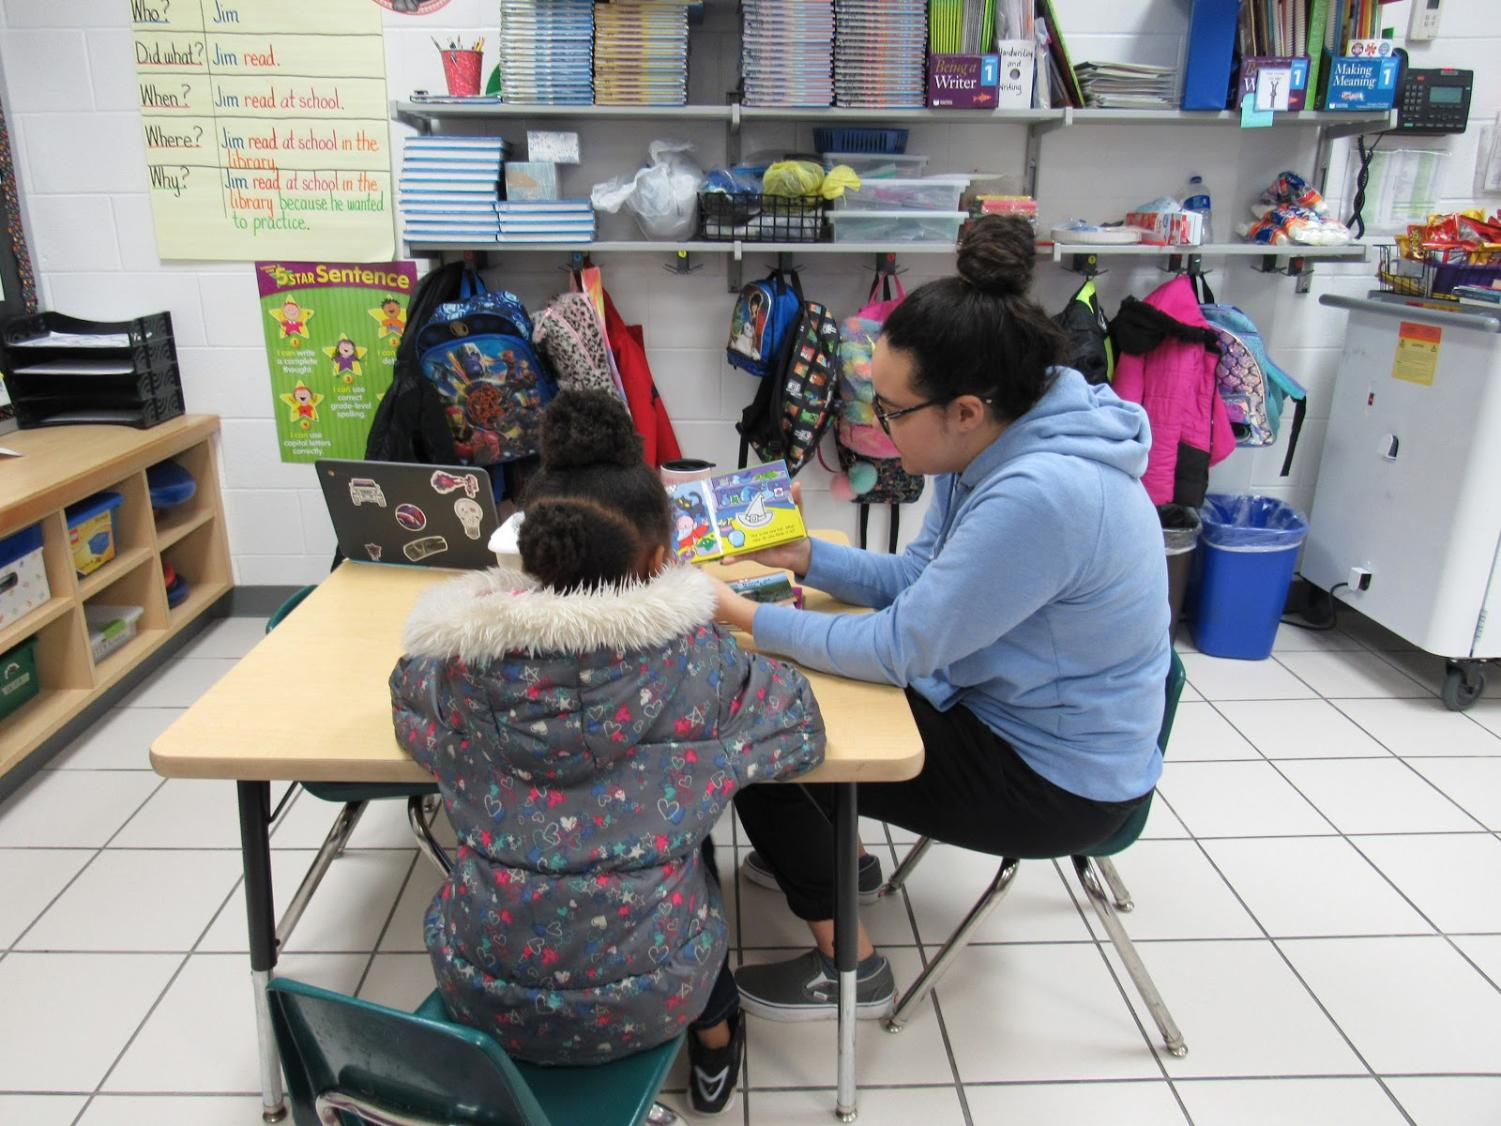 A member of the Interact Club reads with a young student at Diamond Spring Elementary School on January 25.